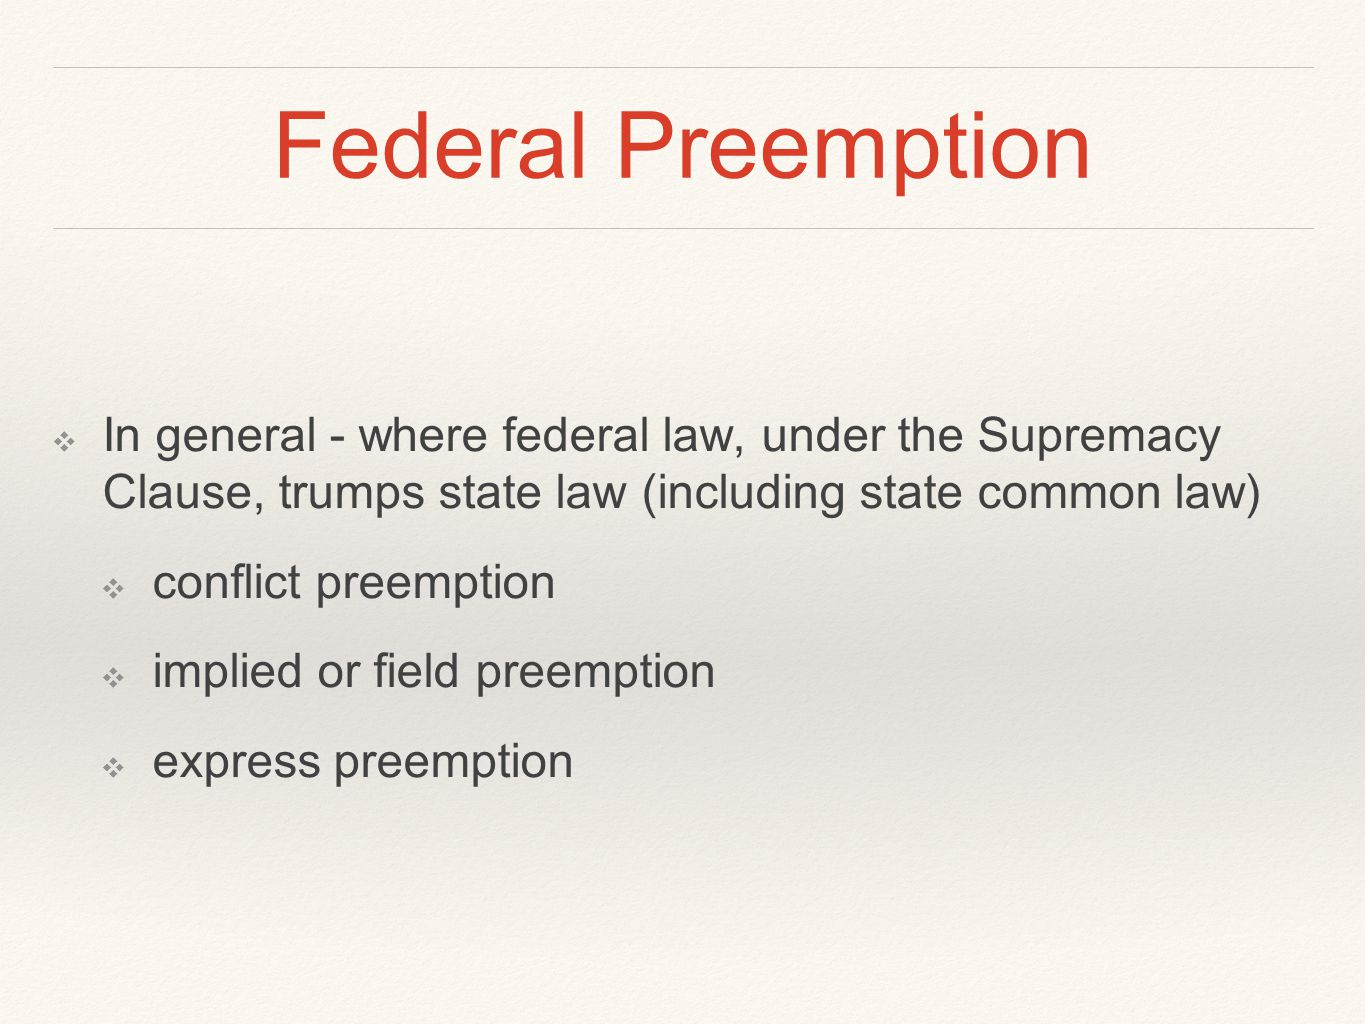 Federal Preemption In general - where federal law, under the Supremacy Clause, trumps state law (including state common law)